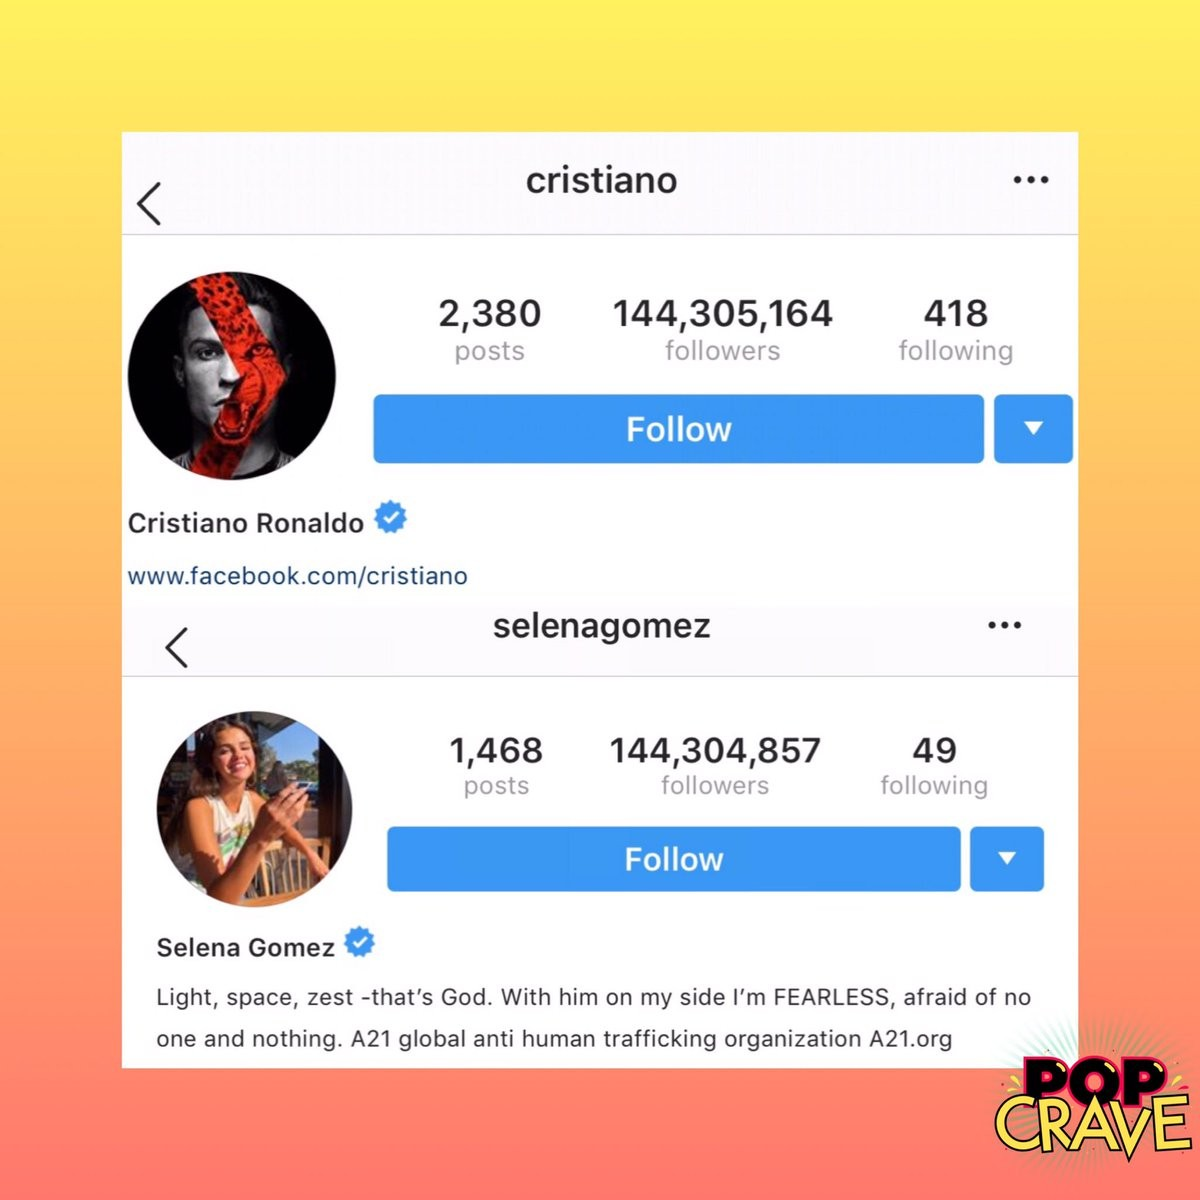 Cristiano Ronaldo surpasses Selena Gomez, becomes the most followed person on Instagram?